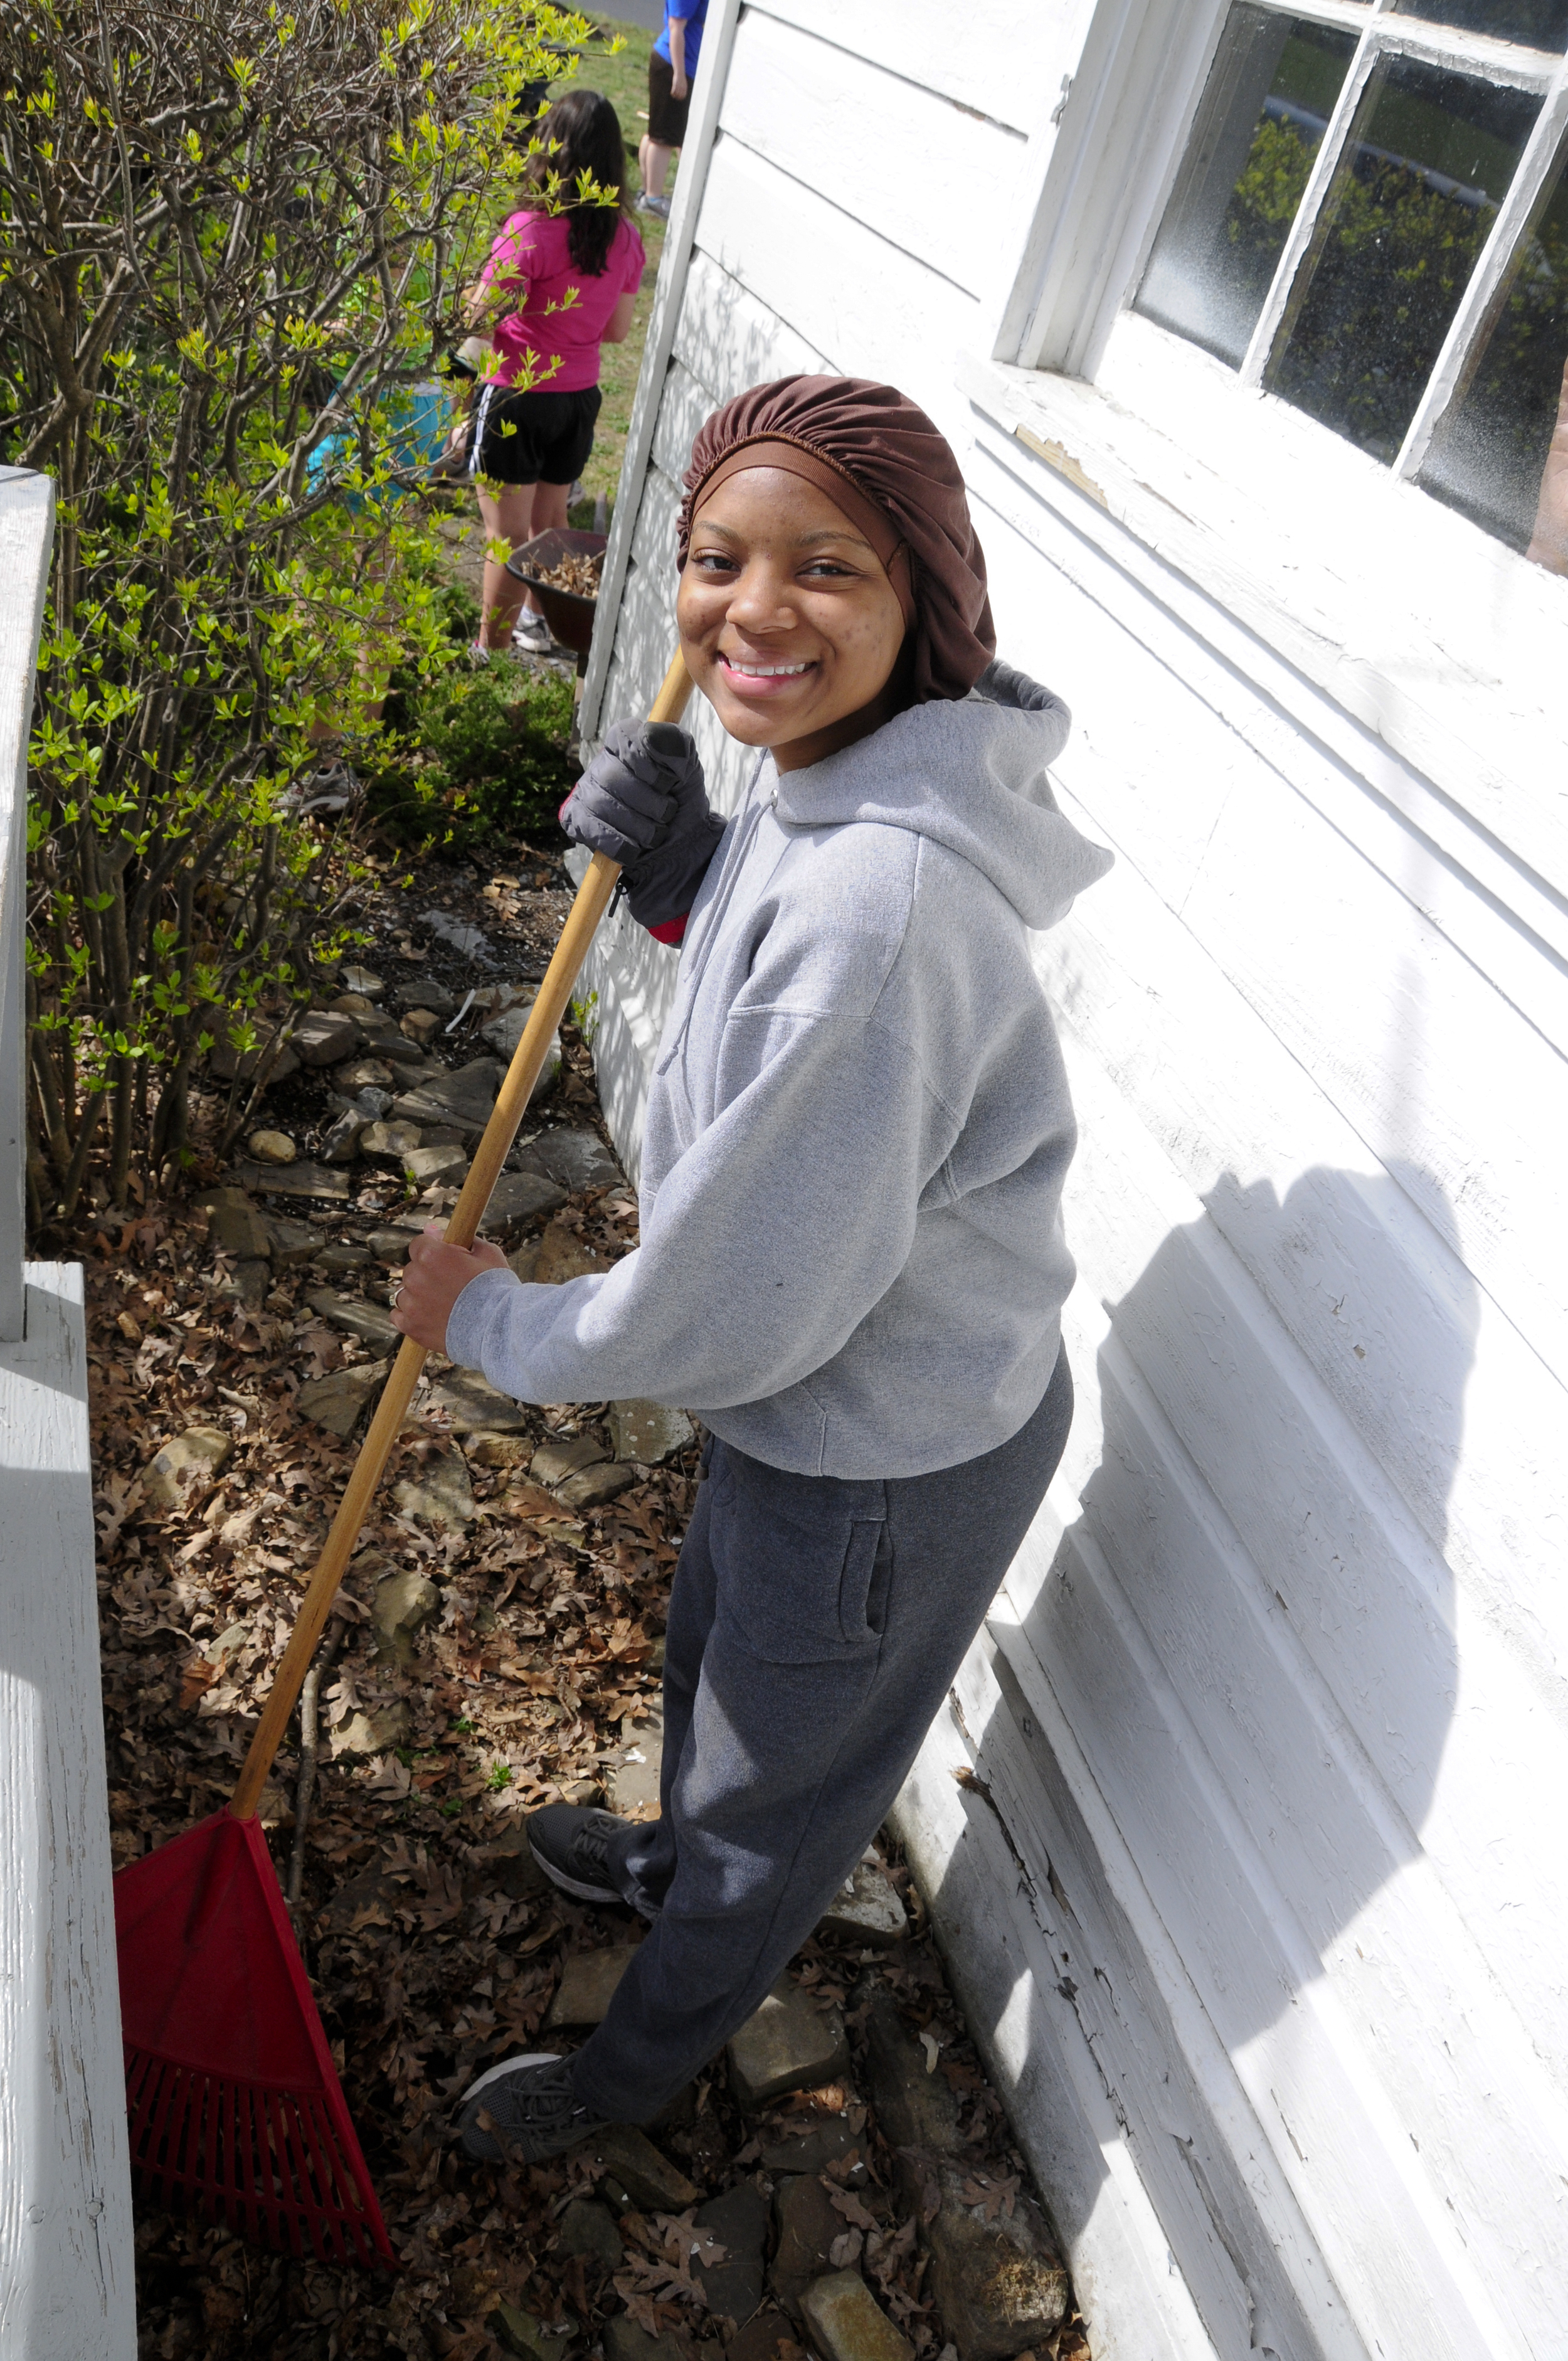 Volunteer at Work – Photo by Tom Cherry, Pennsylvania National Guard,